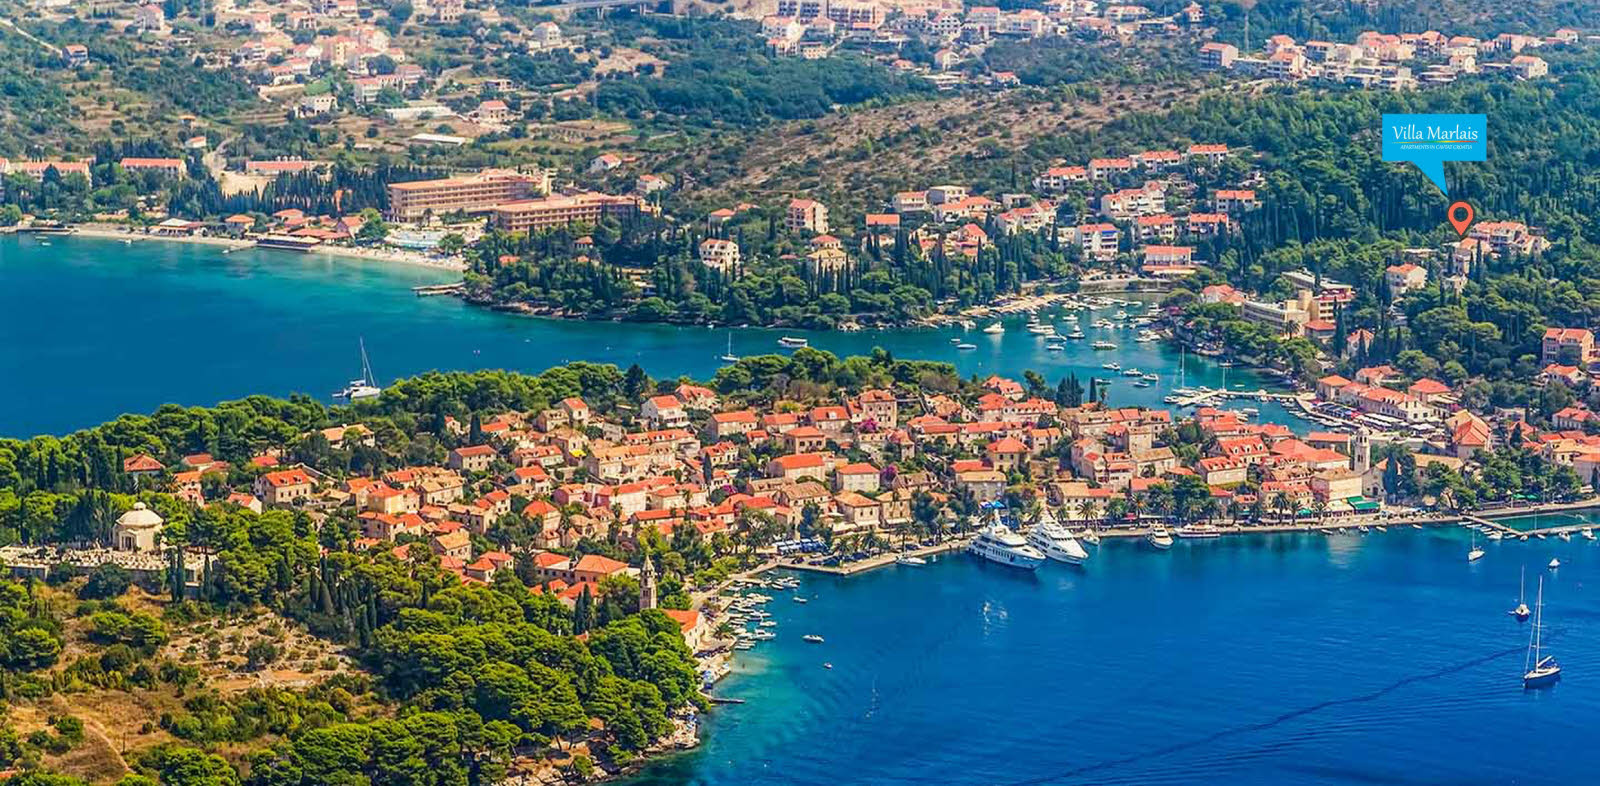 Cavtat - pearl of the Adriatic